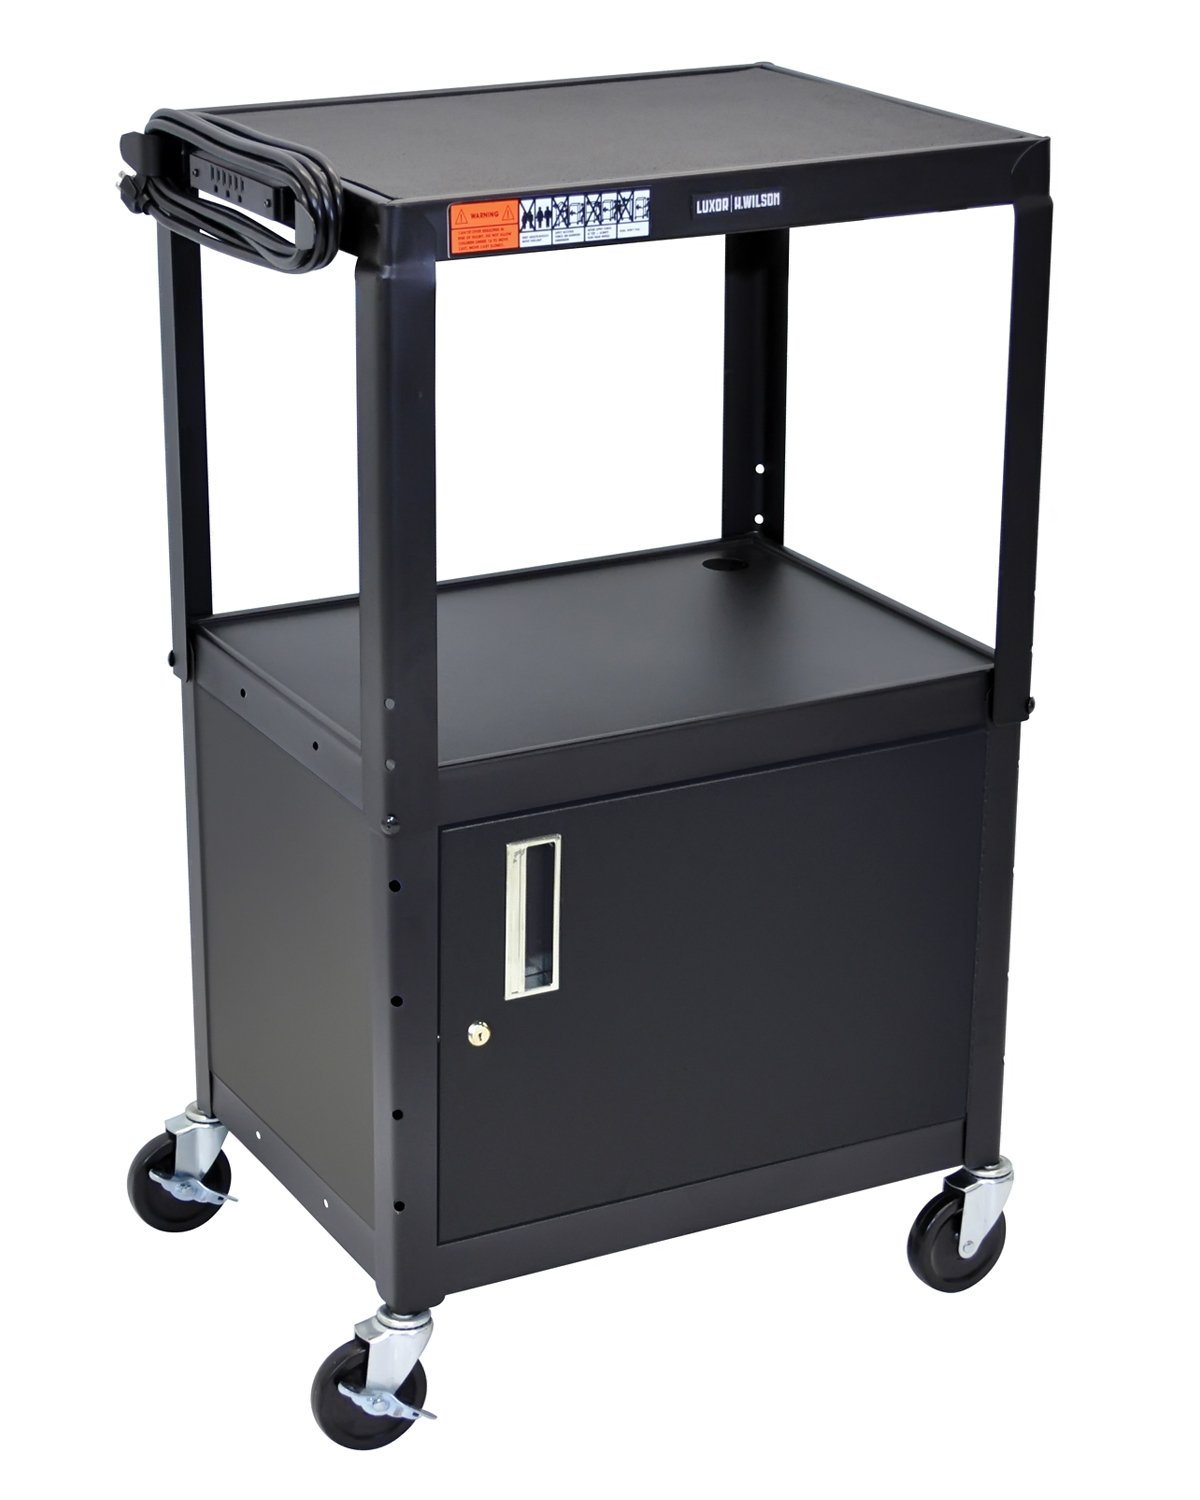 Luxor Multipurpose Adjustable Height Steel A/V Utility Cart with Cabinet - Black by Luxor